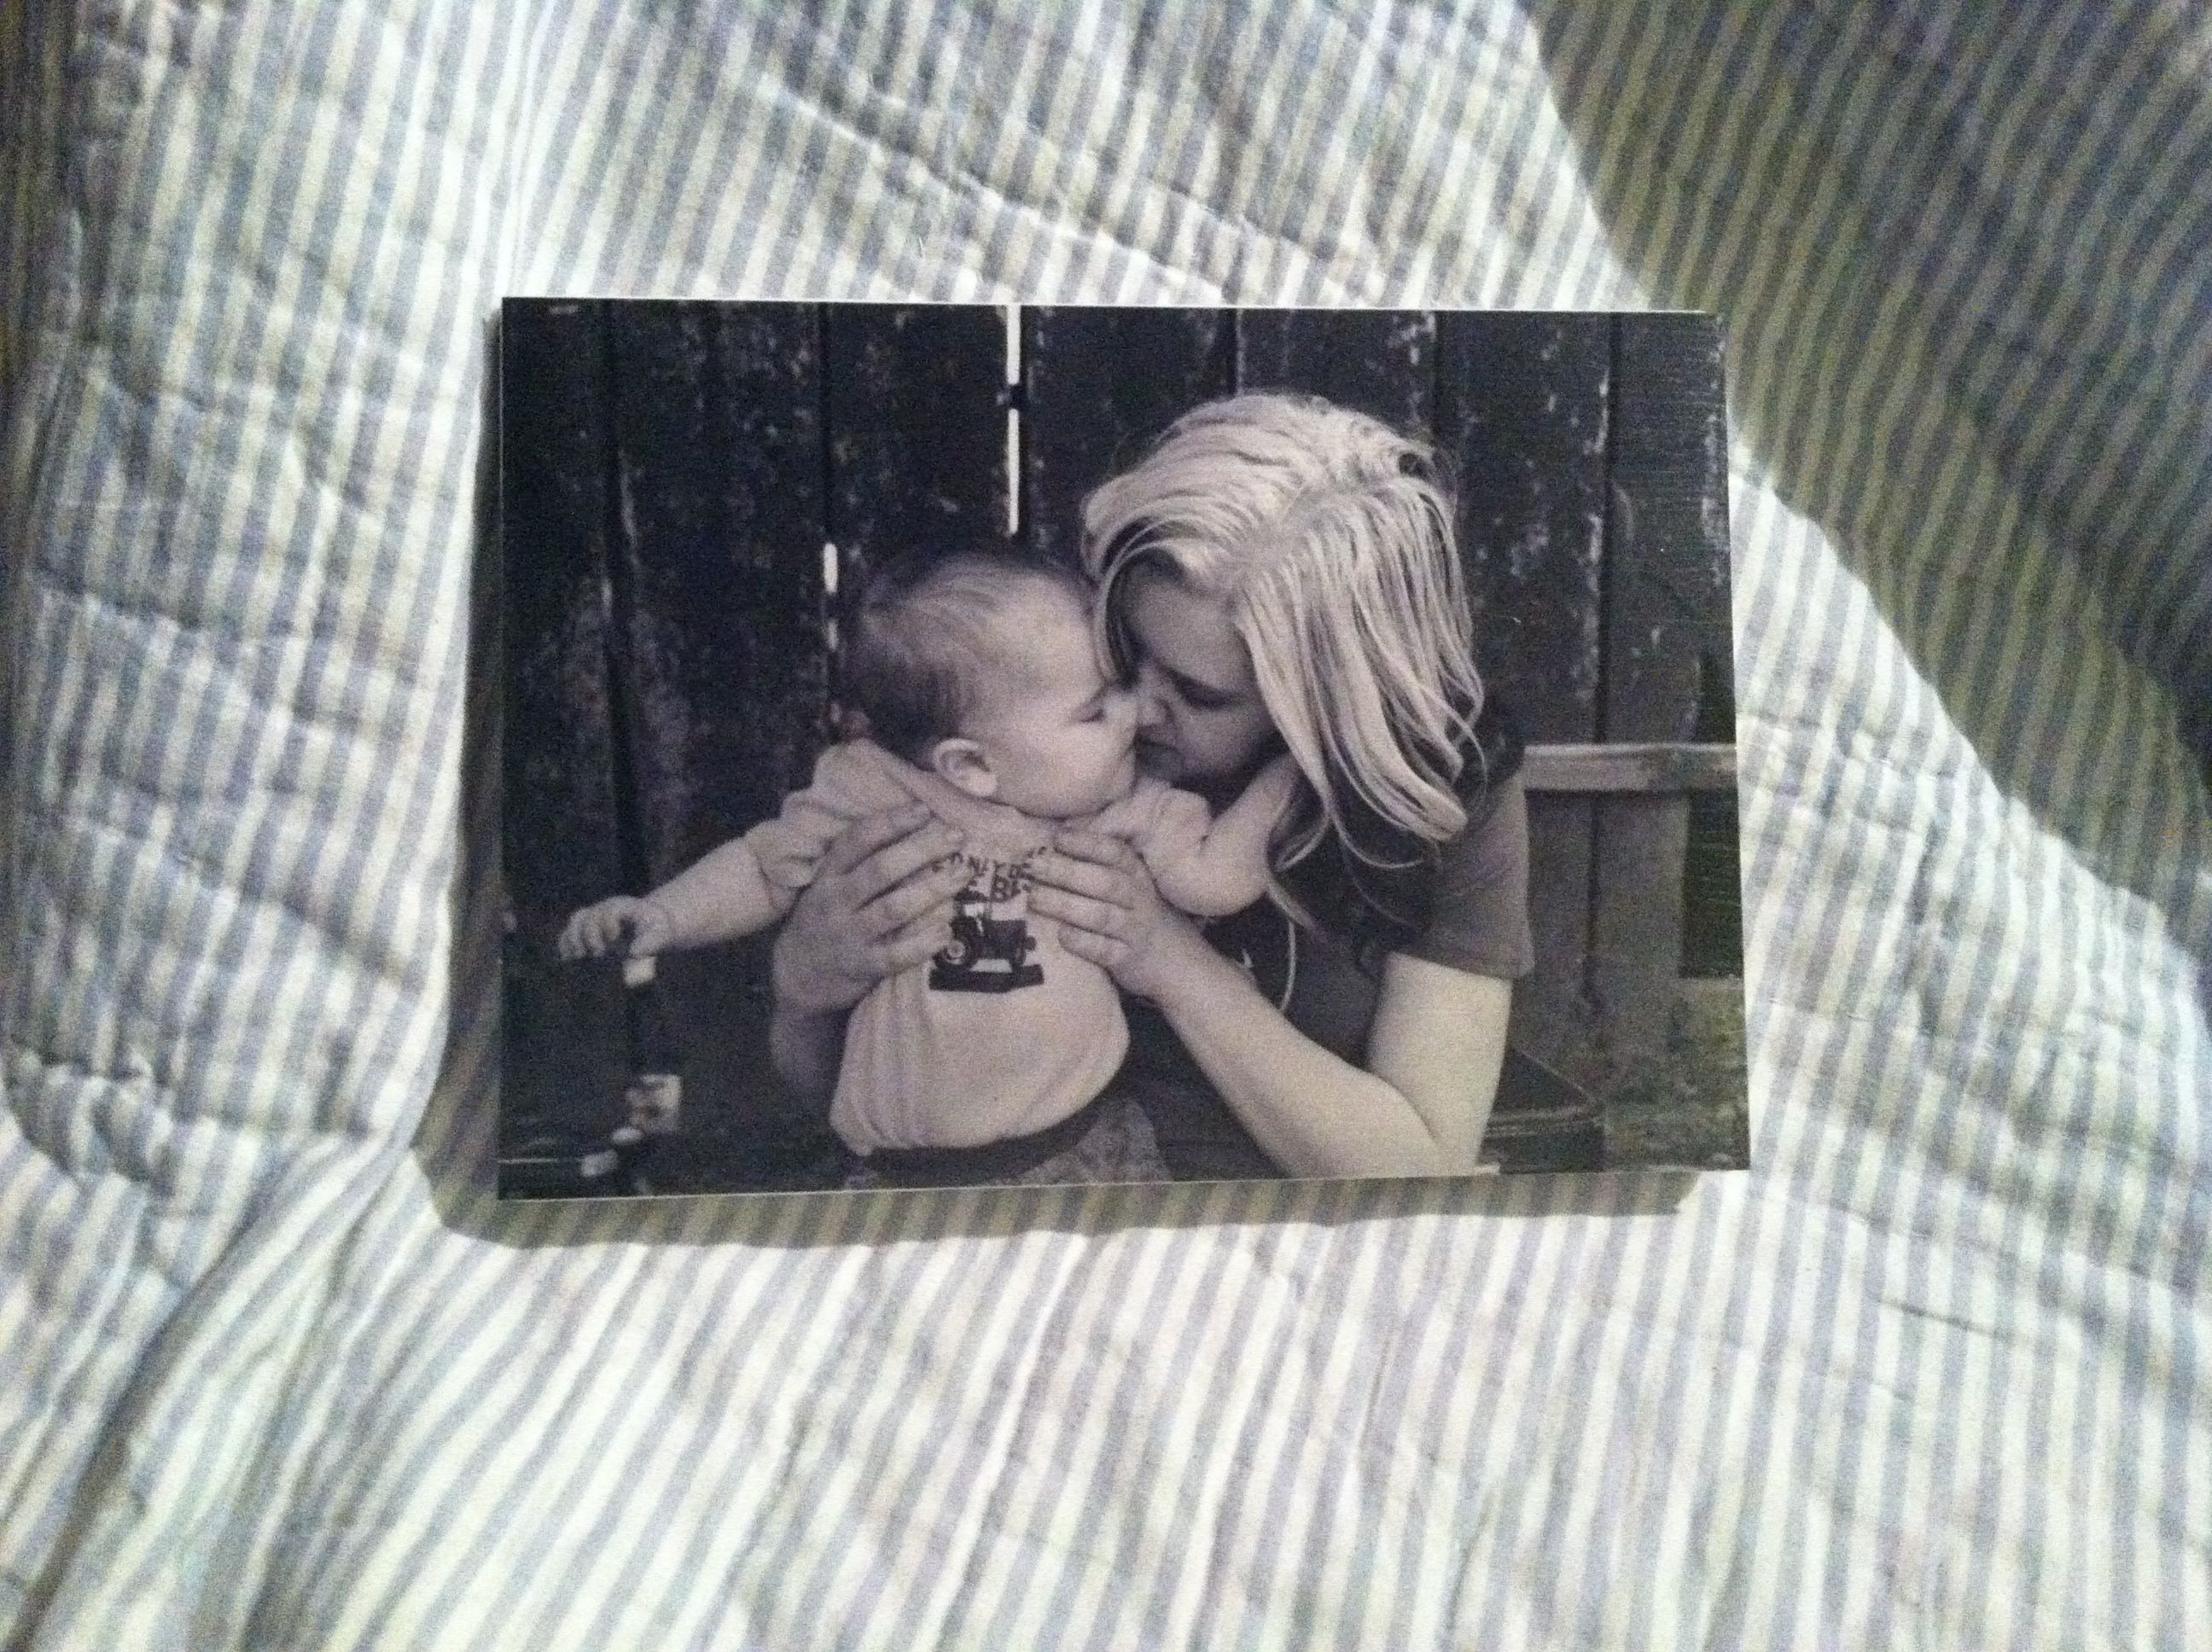 Mod podged this picture onto a canvas. Thanks JennaMichelle Photography for capturing this sweet moment!